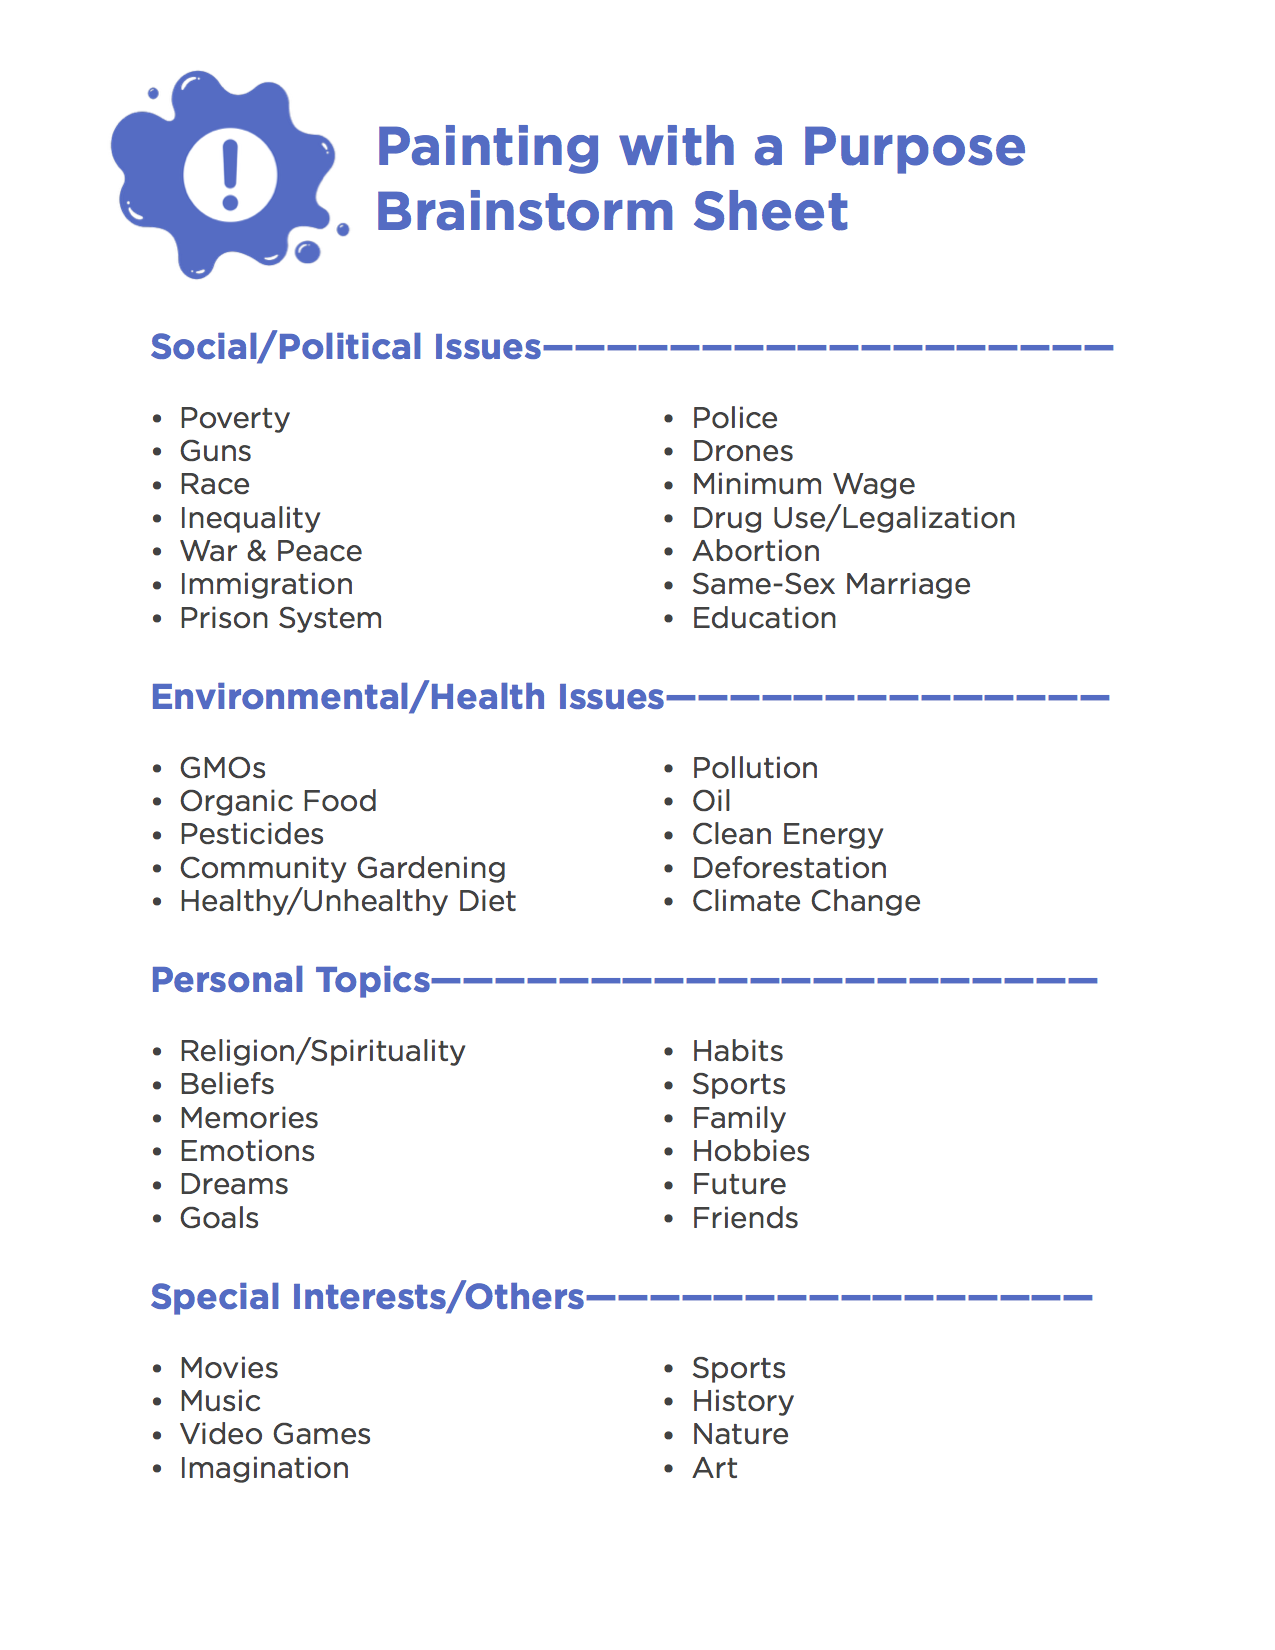 Painting with a Purpose Brainstorm Sheet